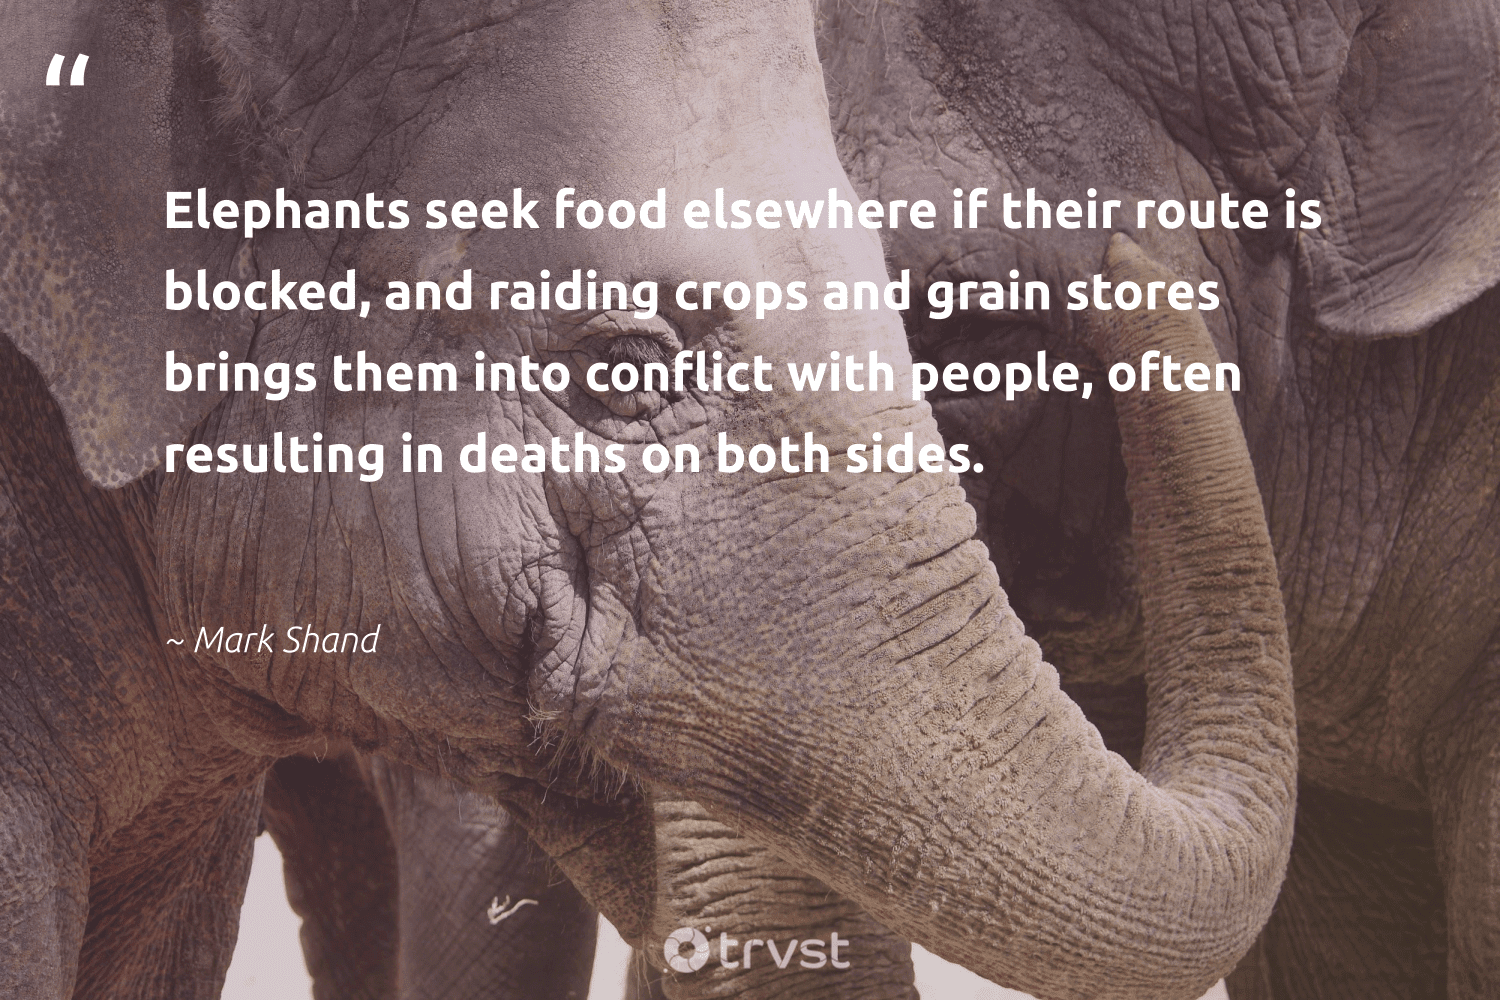 """""""Elephants seek food elsewhere if their route is blocked, and raiding crops and grain stores brings them into conflict with people, often resulting in deaths on both sides.""""  - Mark Shand #trvst #quotes #food #elephants #hungry #explore #makeadifference #dogood #hunger #conservation #equalopportunity #dotherightthing"""